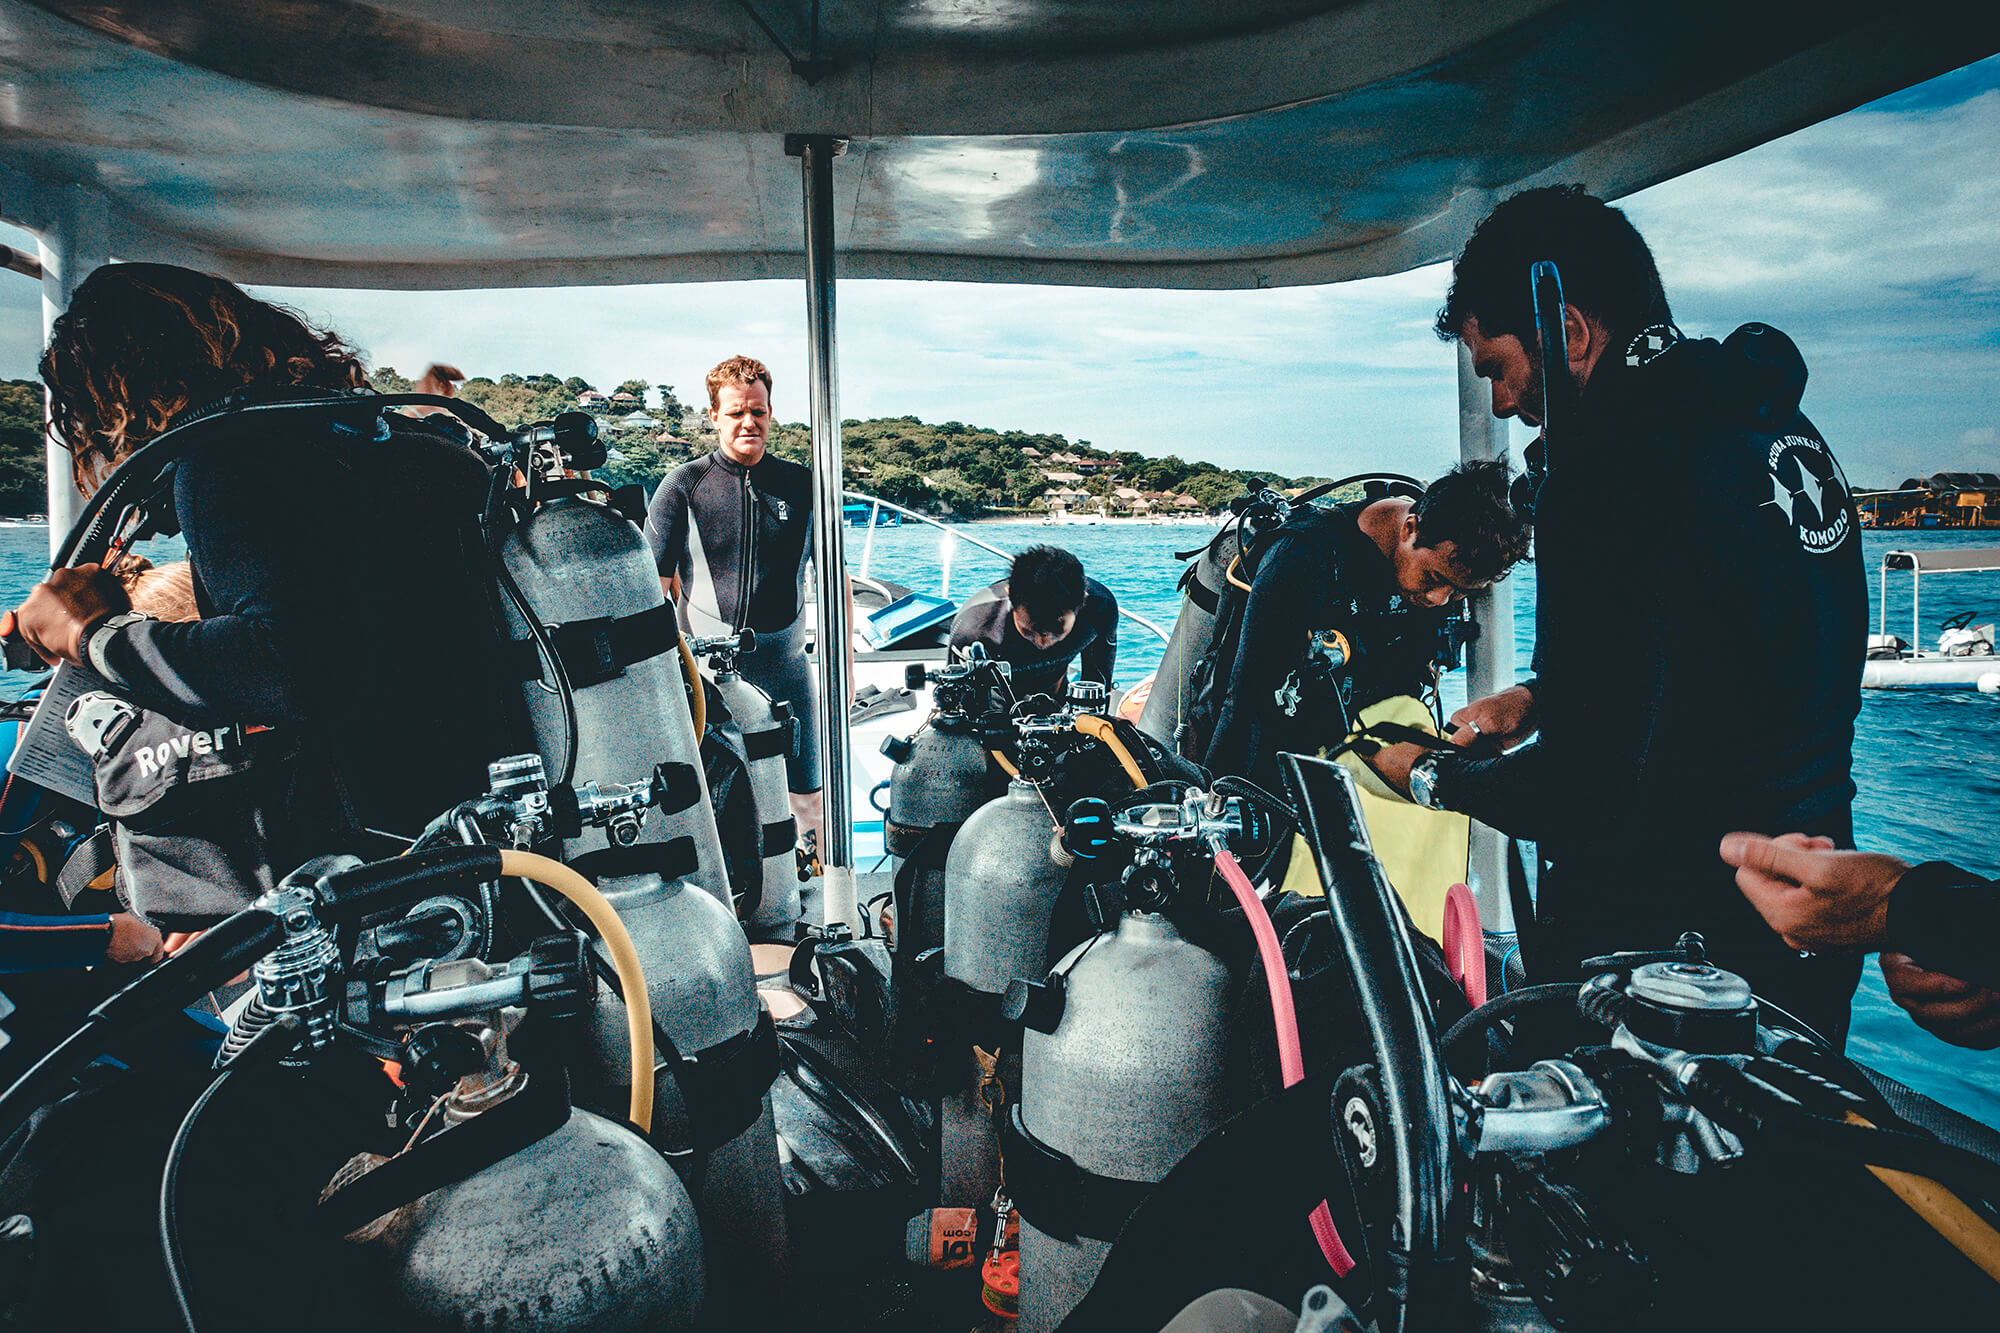 Are you looking to expand your scuba diving skills? - Take a PADI Specialty Diver Course